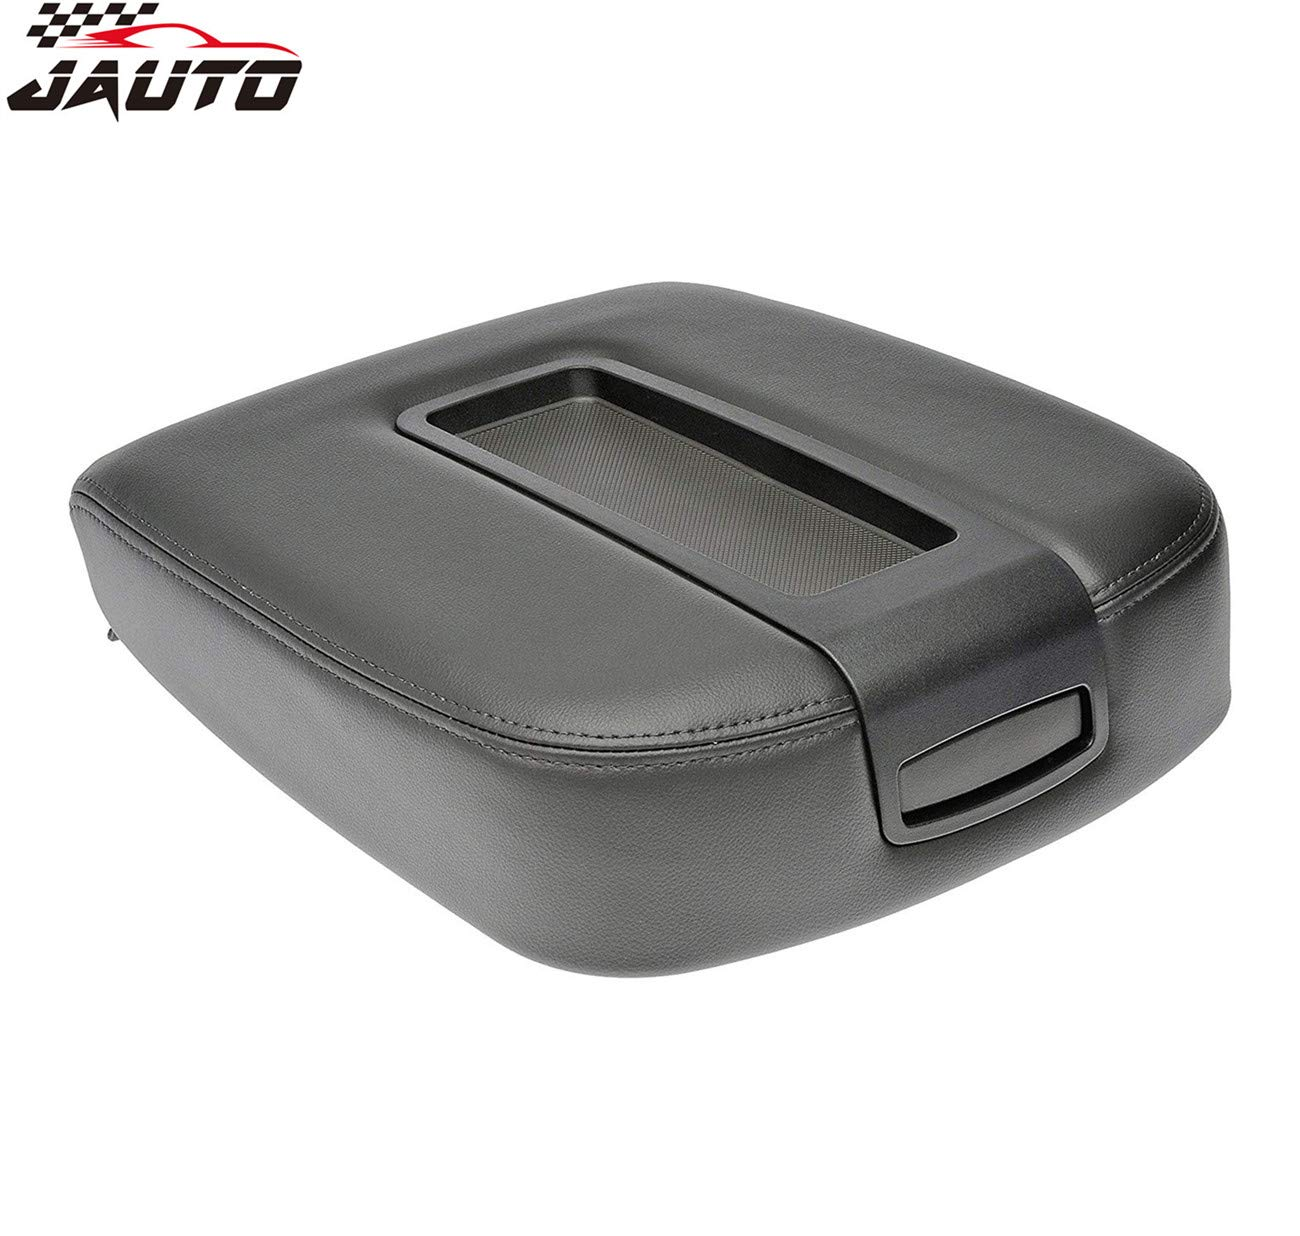 JAUTO Center Console Lid Kit for Select GM Vehicles - Replaces 15217111 15941534 - Black